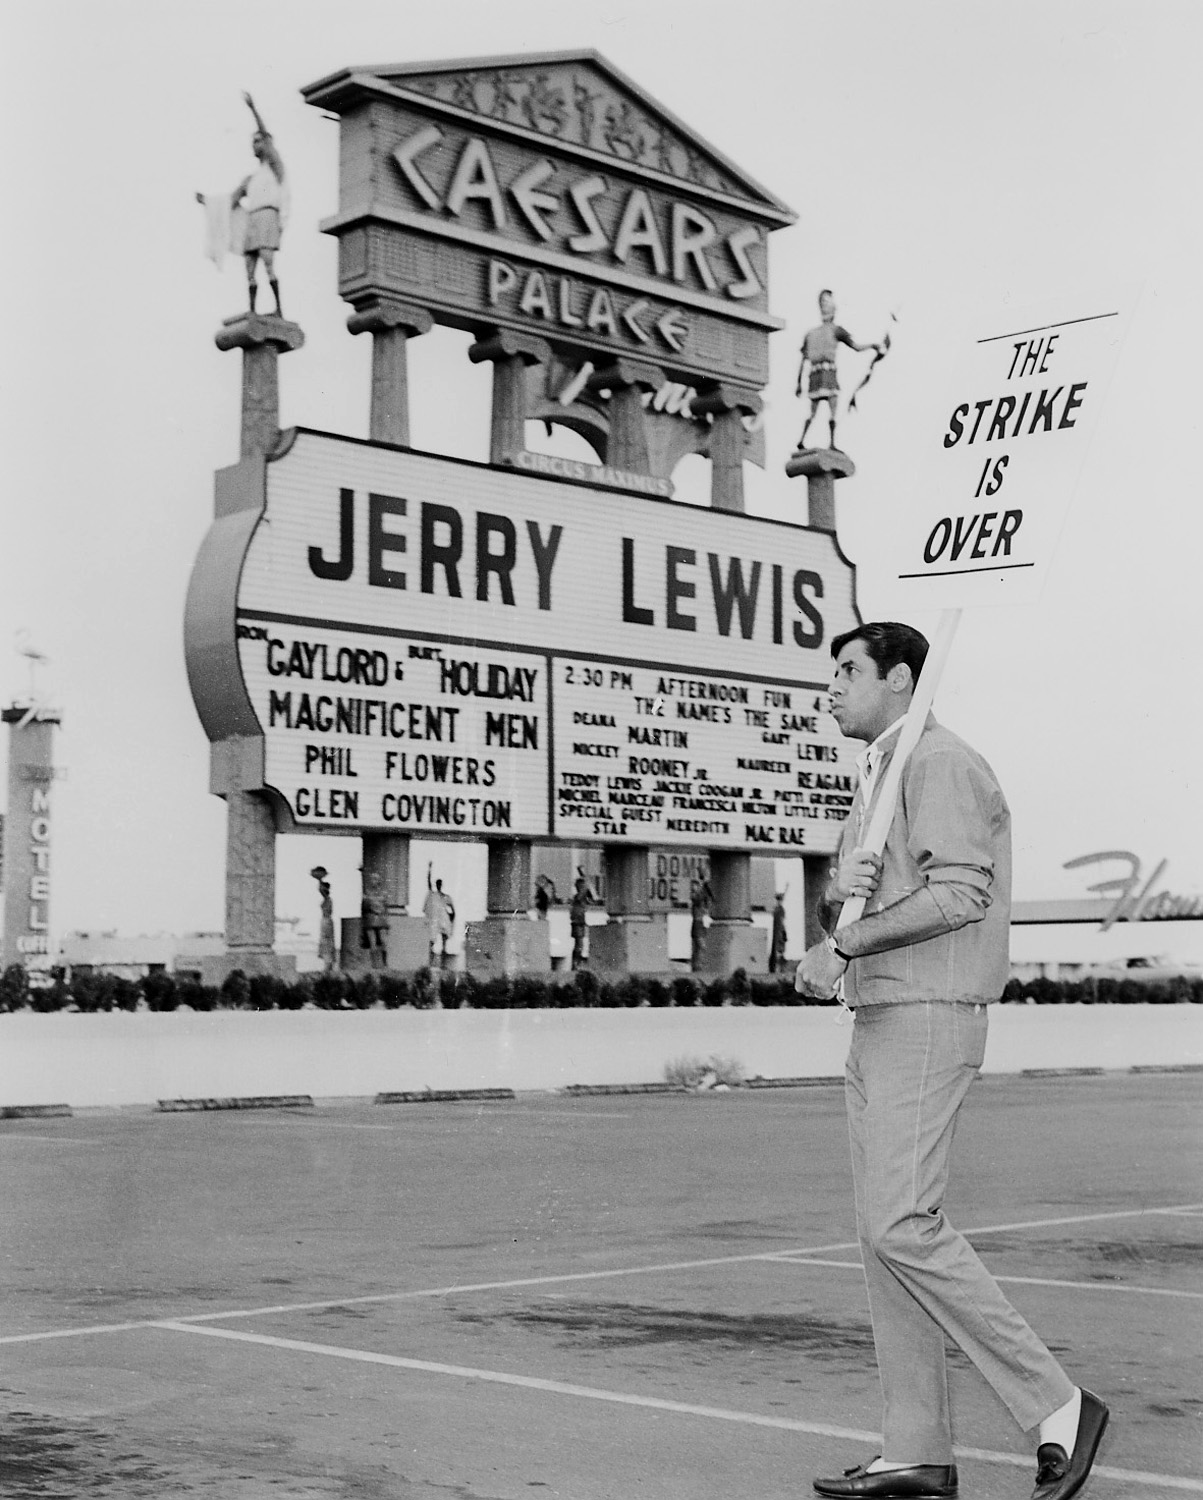 Caesars Palace marquee with Jerry Lewis. CREDIT: Las Vegas News Bureau